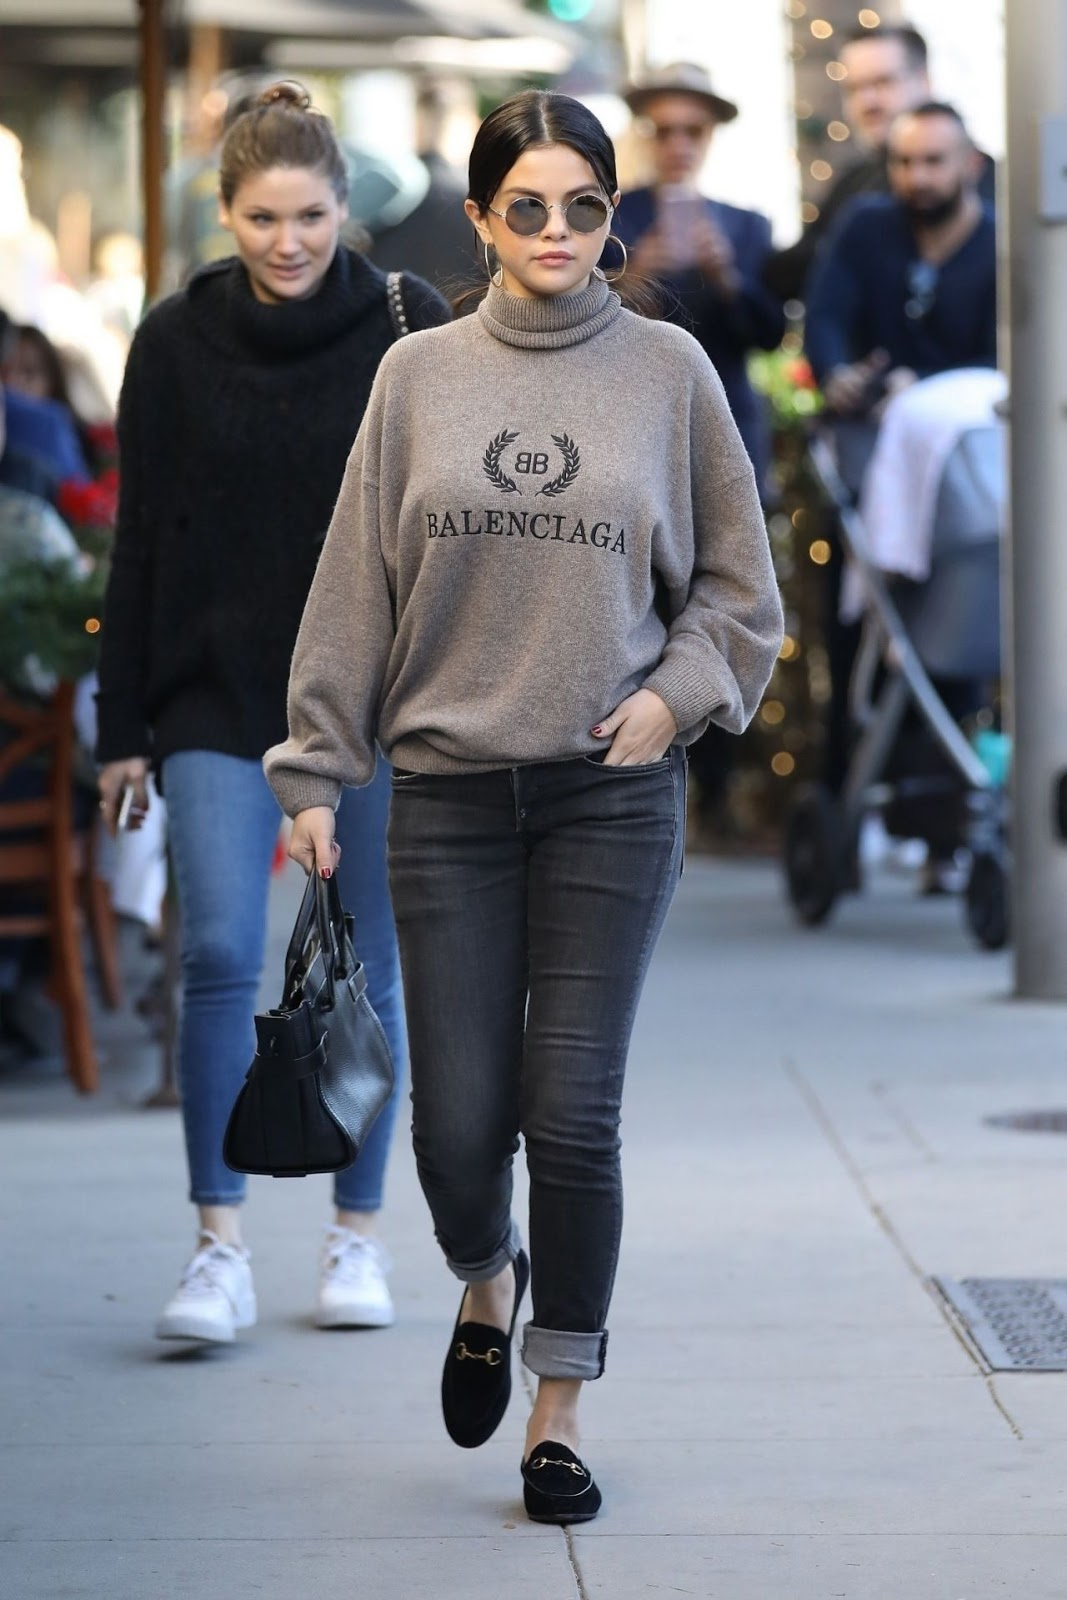 Selena Gomez spotted in Balenciaga turtleneck in LA